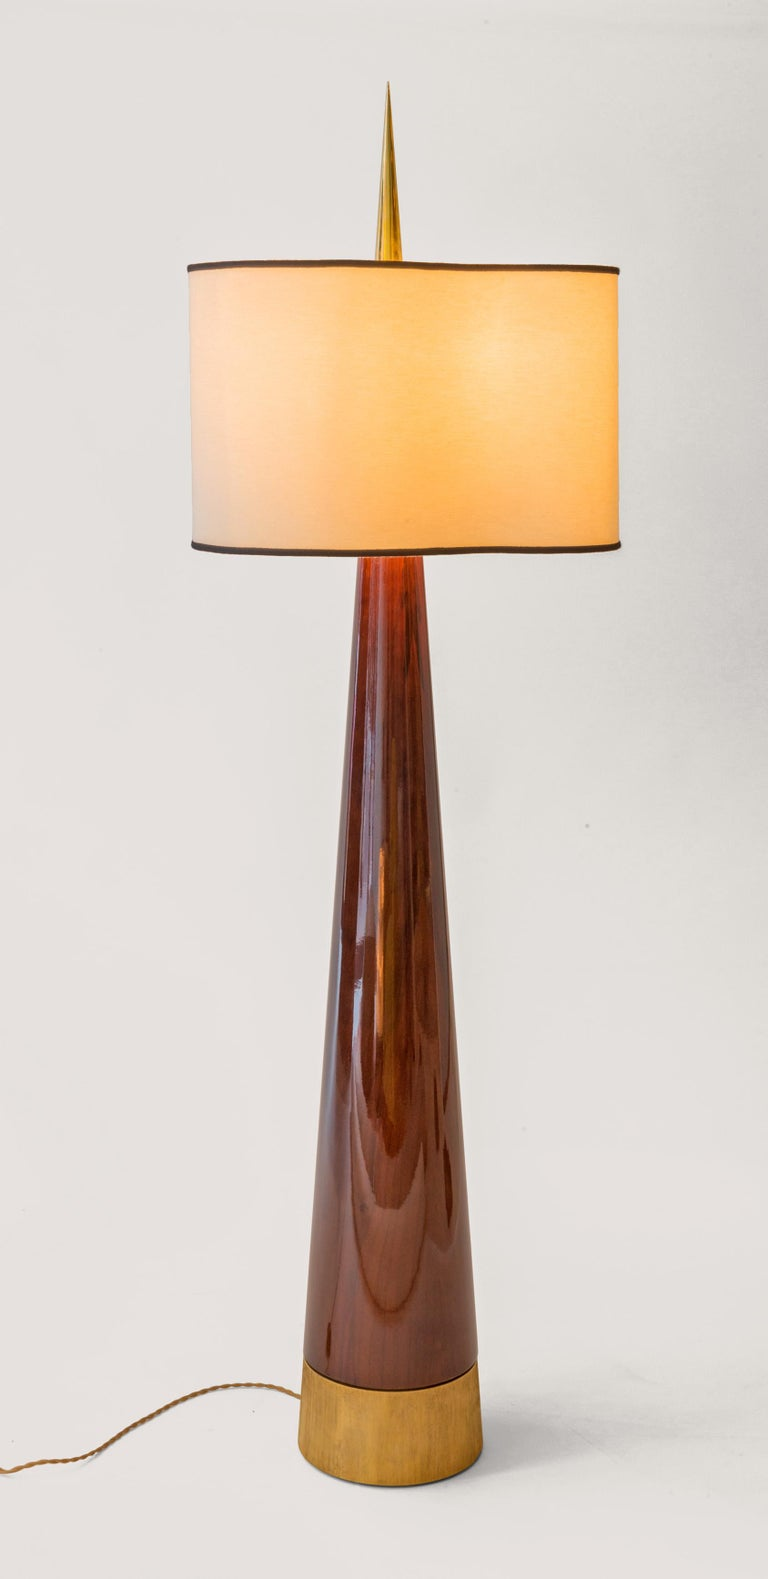 Achille Salvagni Sting Magnum 2016 Conical lamp base in European walnut with French polished finish with cast bronze, 24ct gold-plated base and polished and protected smooth brass finial with organic silk lampshade. Limited Edition of 20 * Price (ex